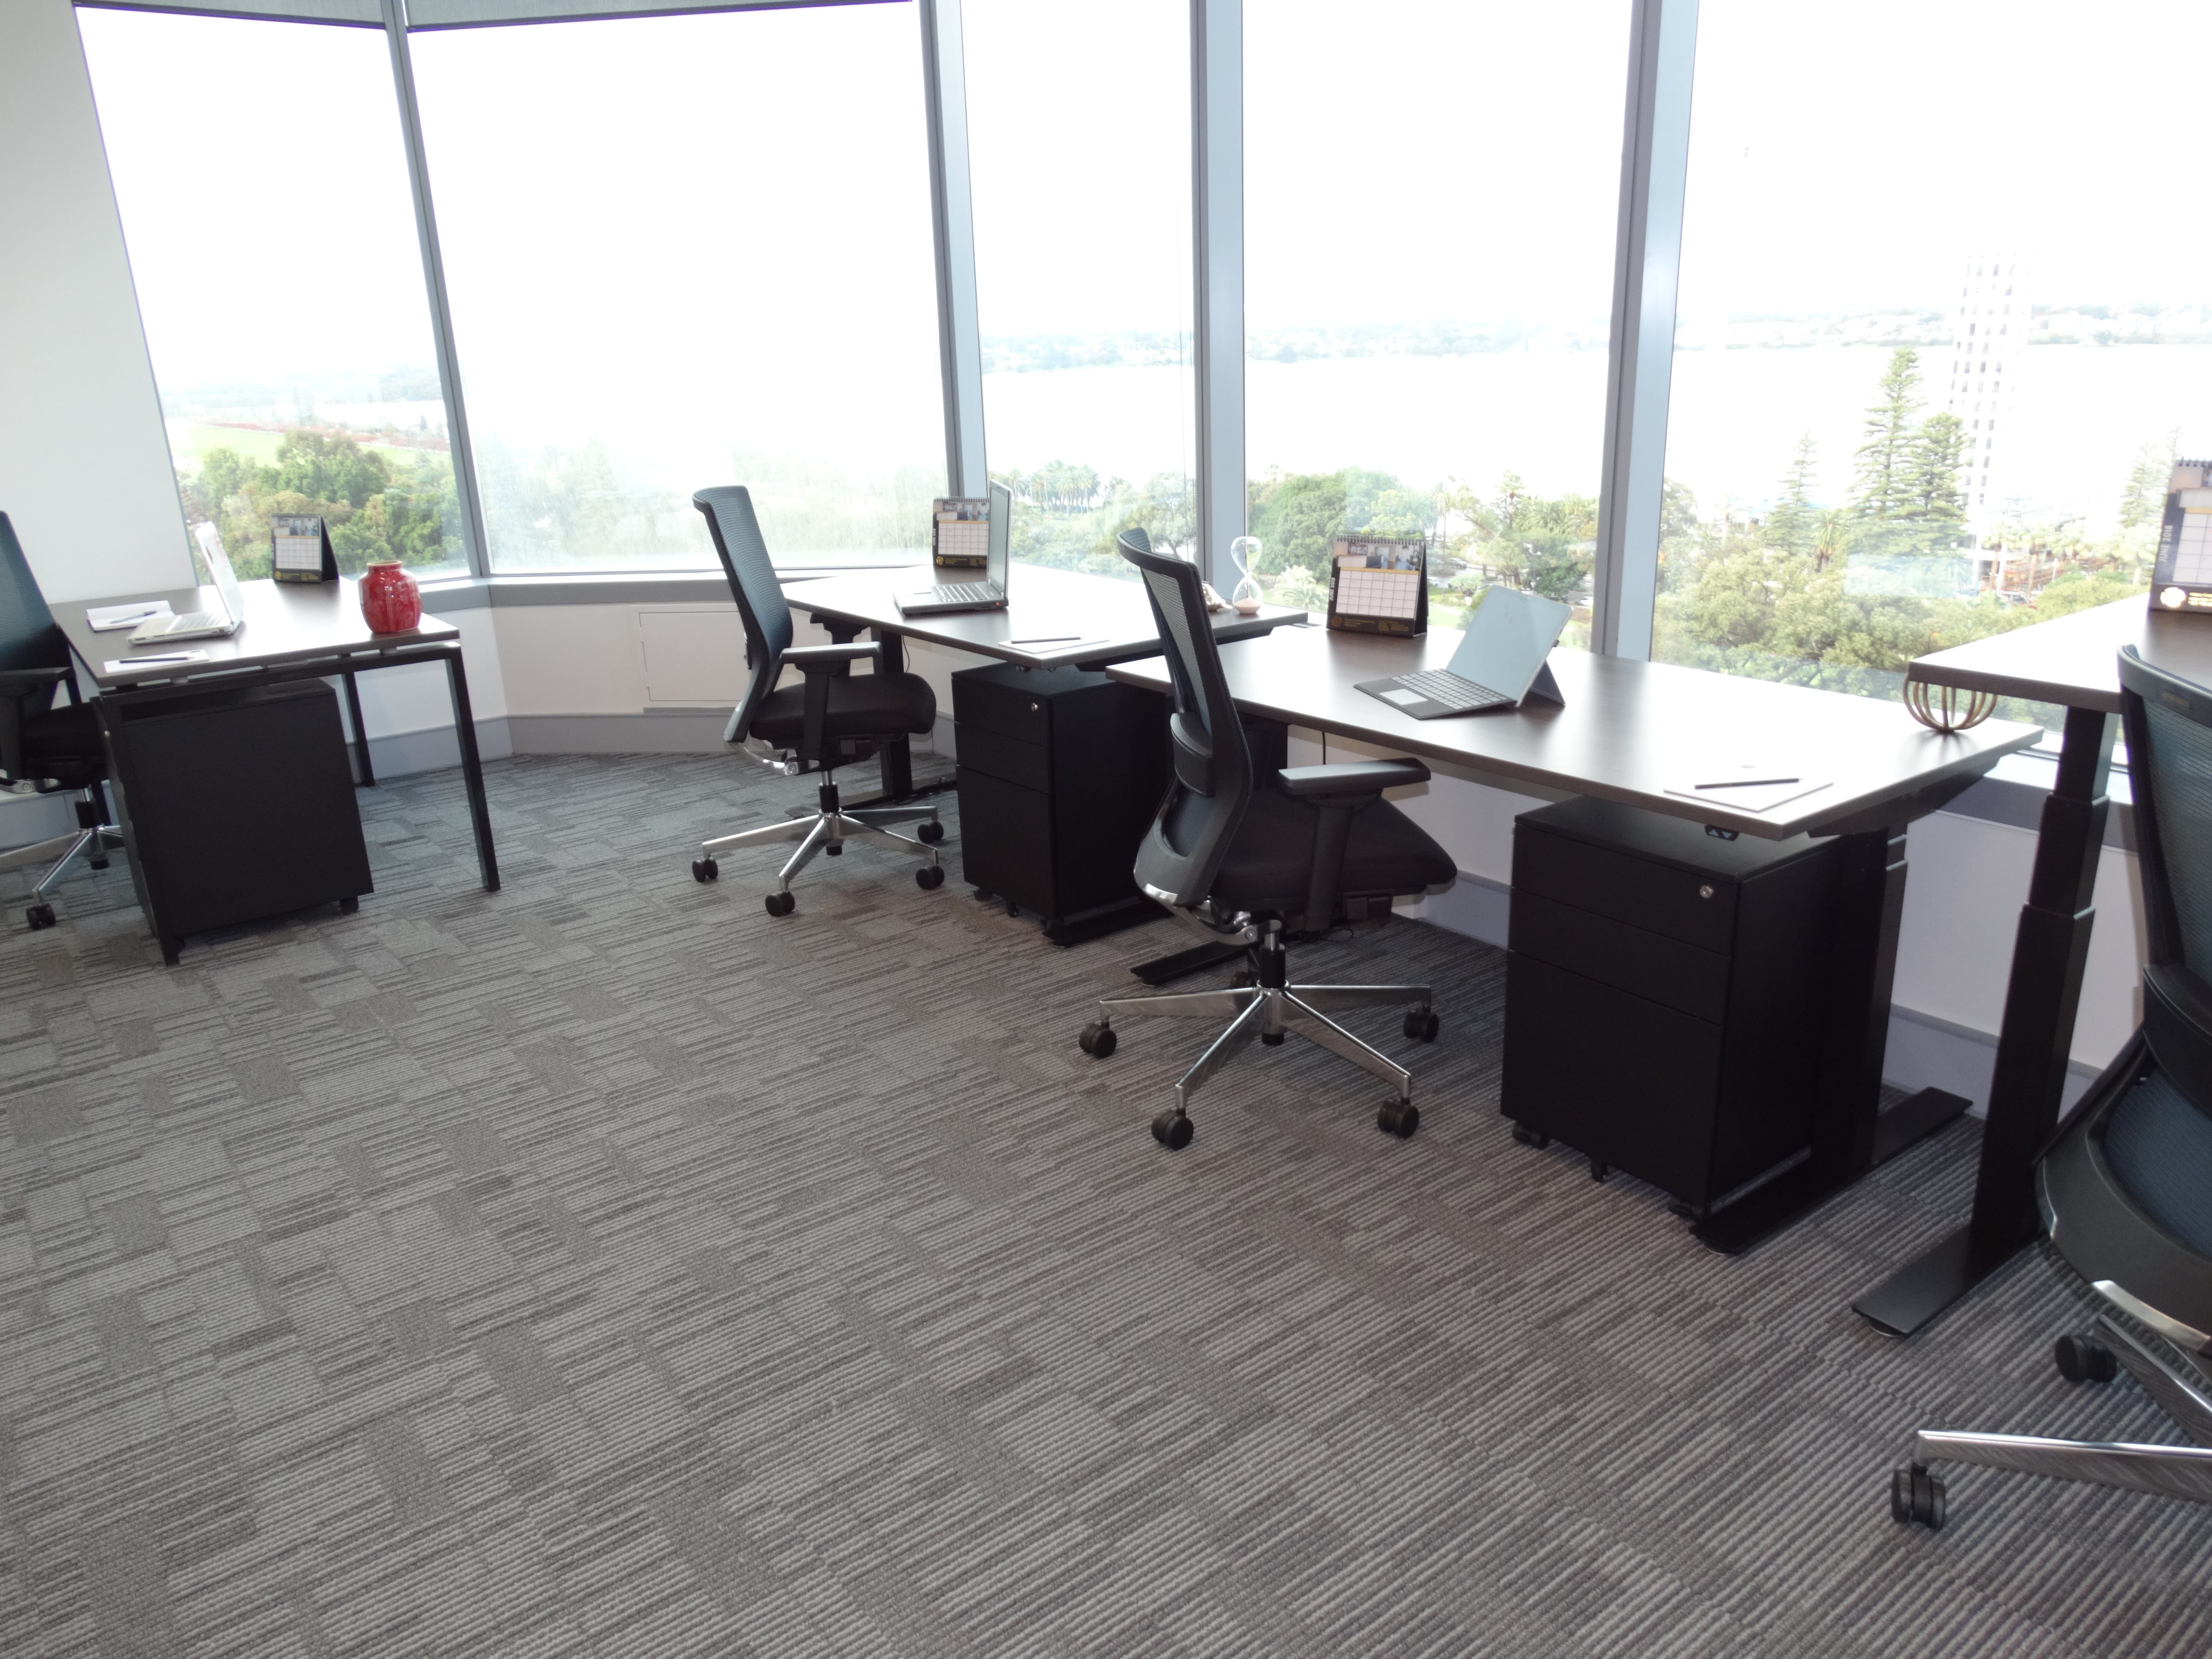 Serviced office at The Exchange Tower, image 1